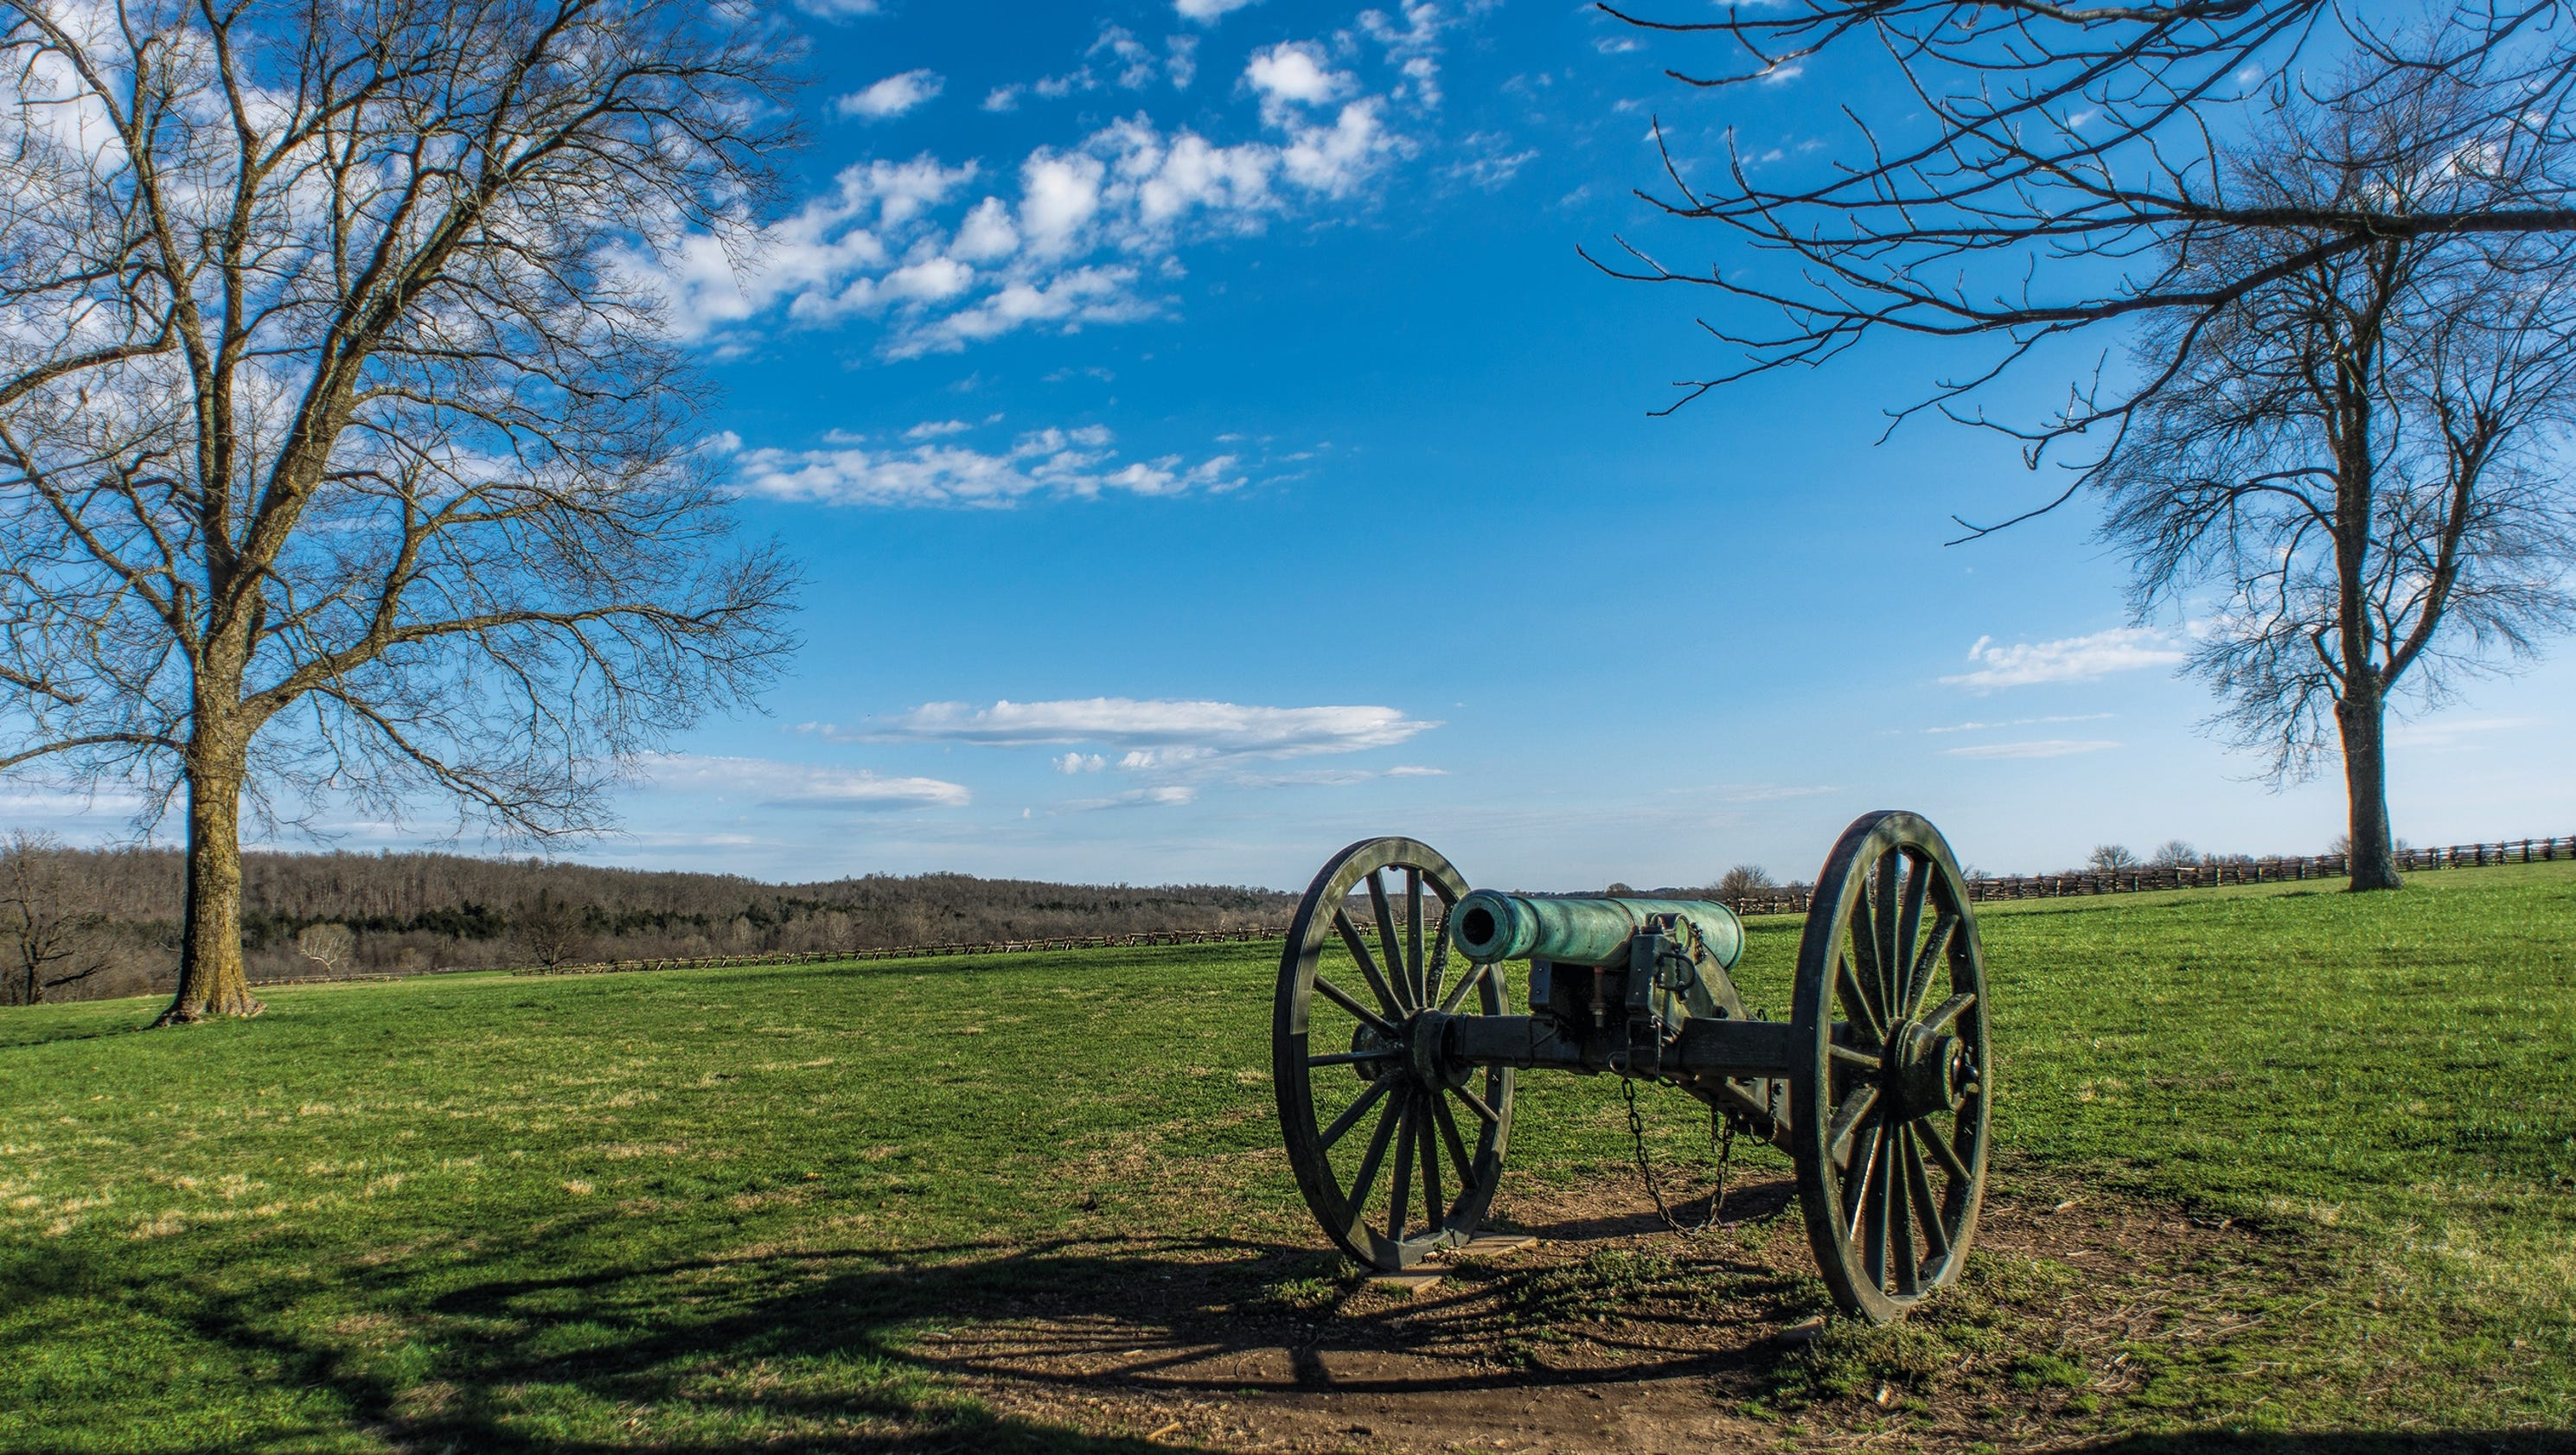 Confederate Memorial Day is still celebrated in these states